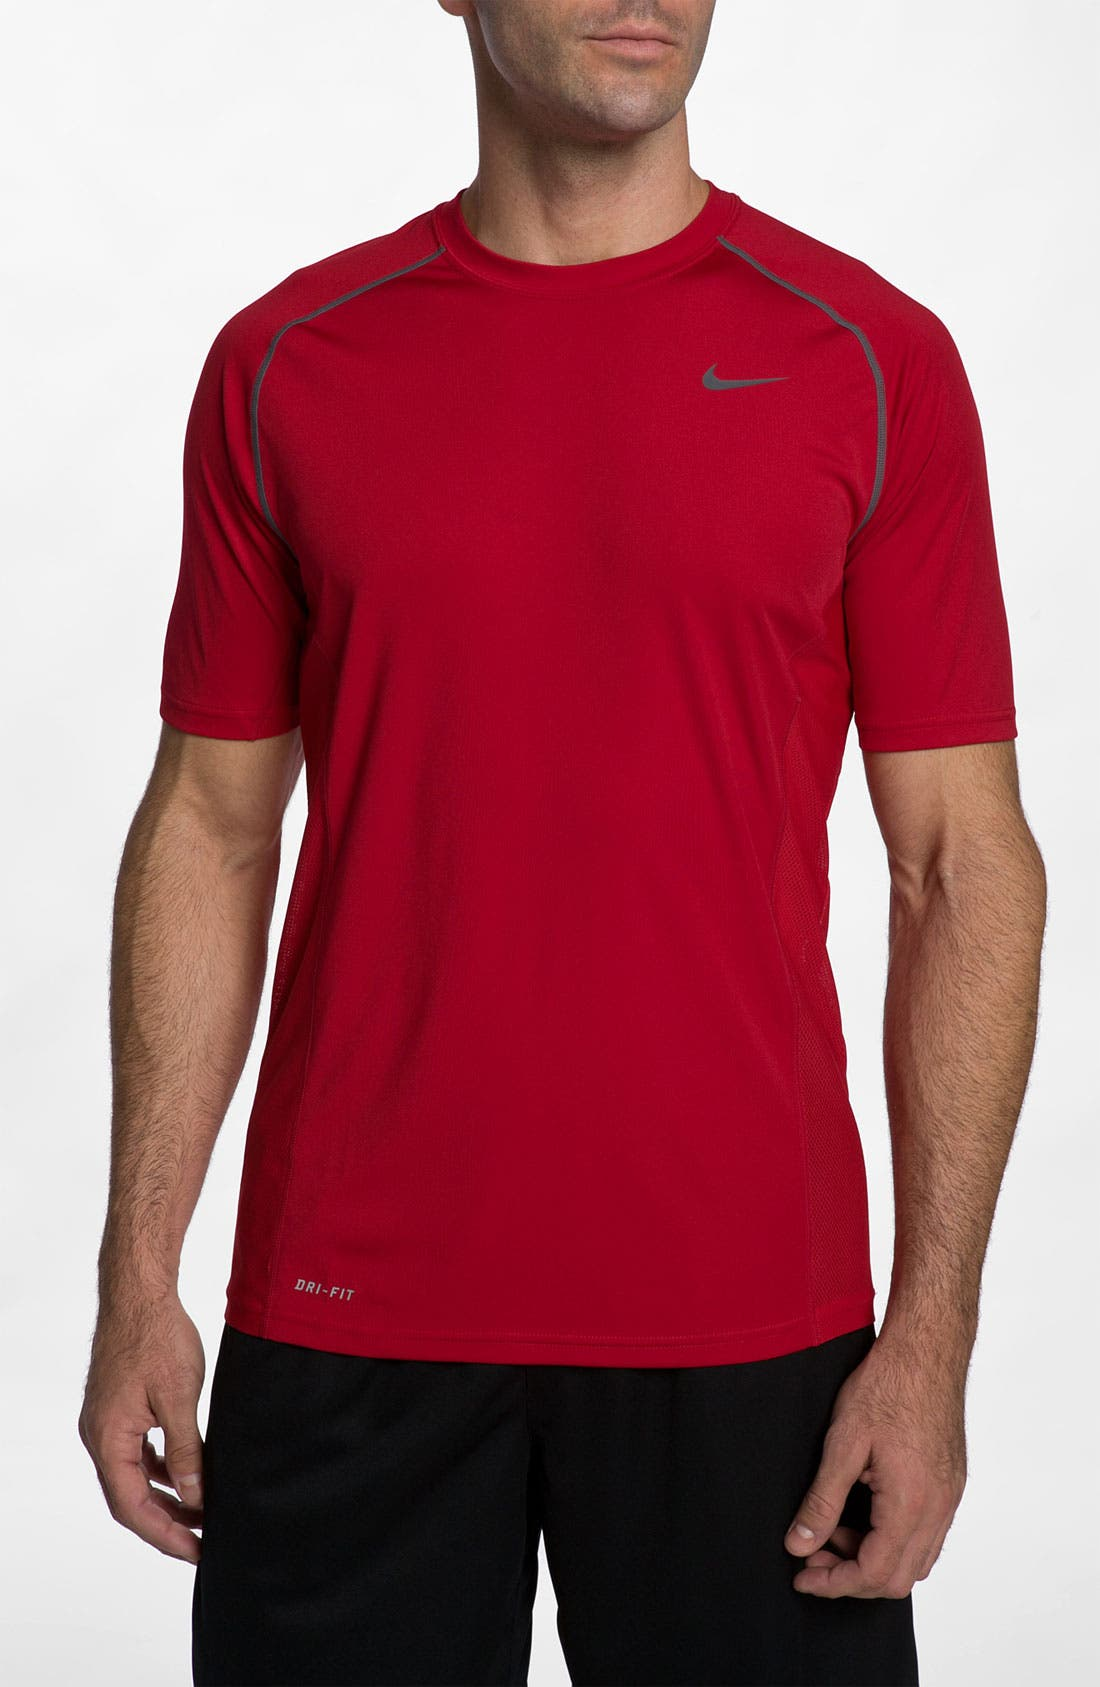 Alternate Image 1 Selected - Nike 'Speed Legend 2.0' T-Shirt